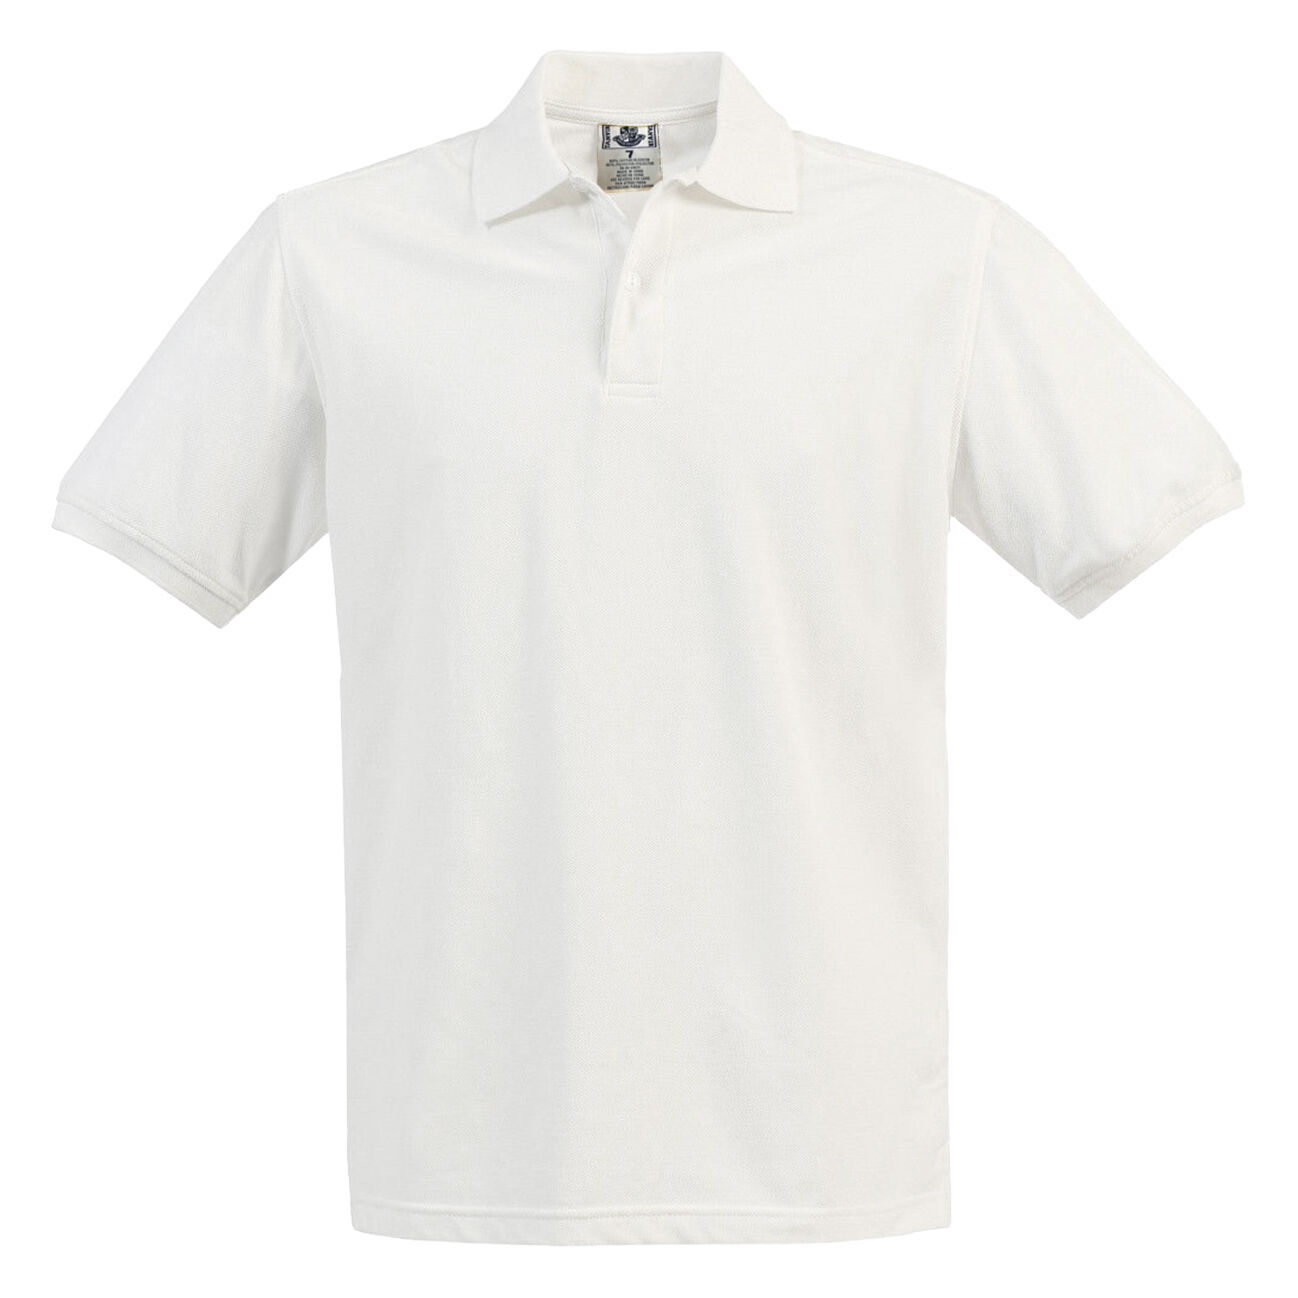 Boys Girls White Pique Polo Shirt School Uniform Short Sleeve